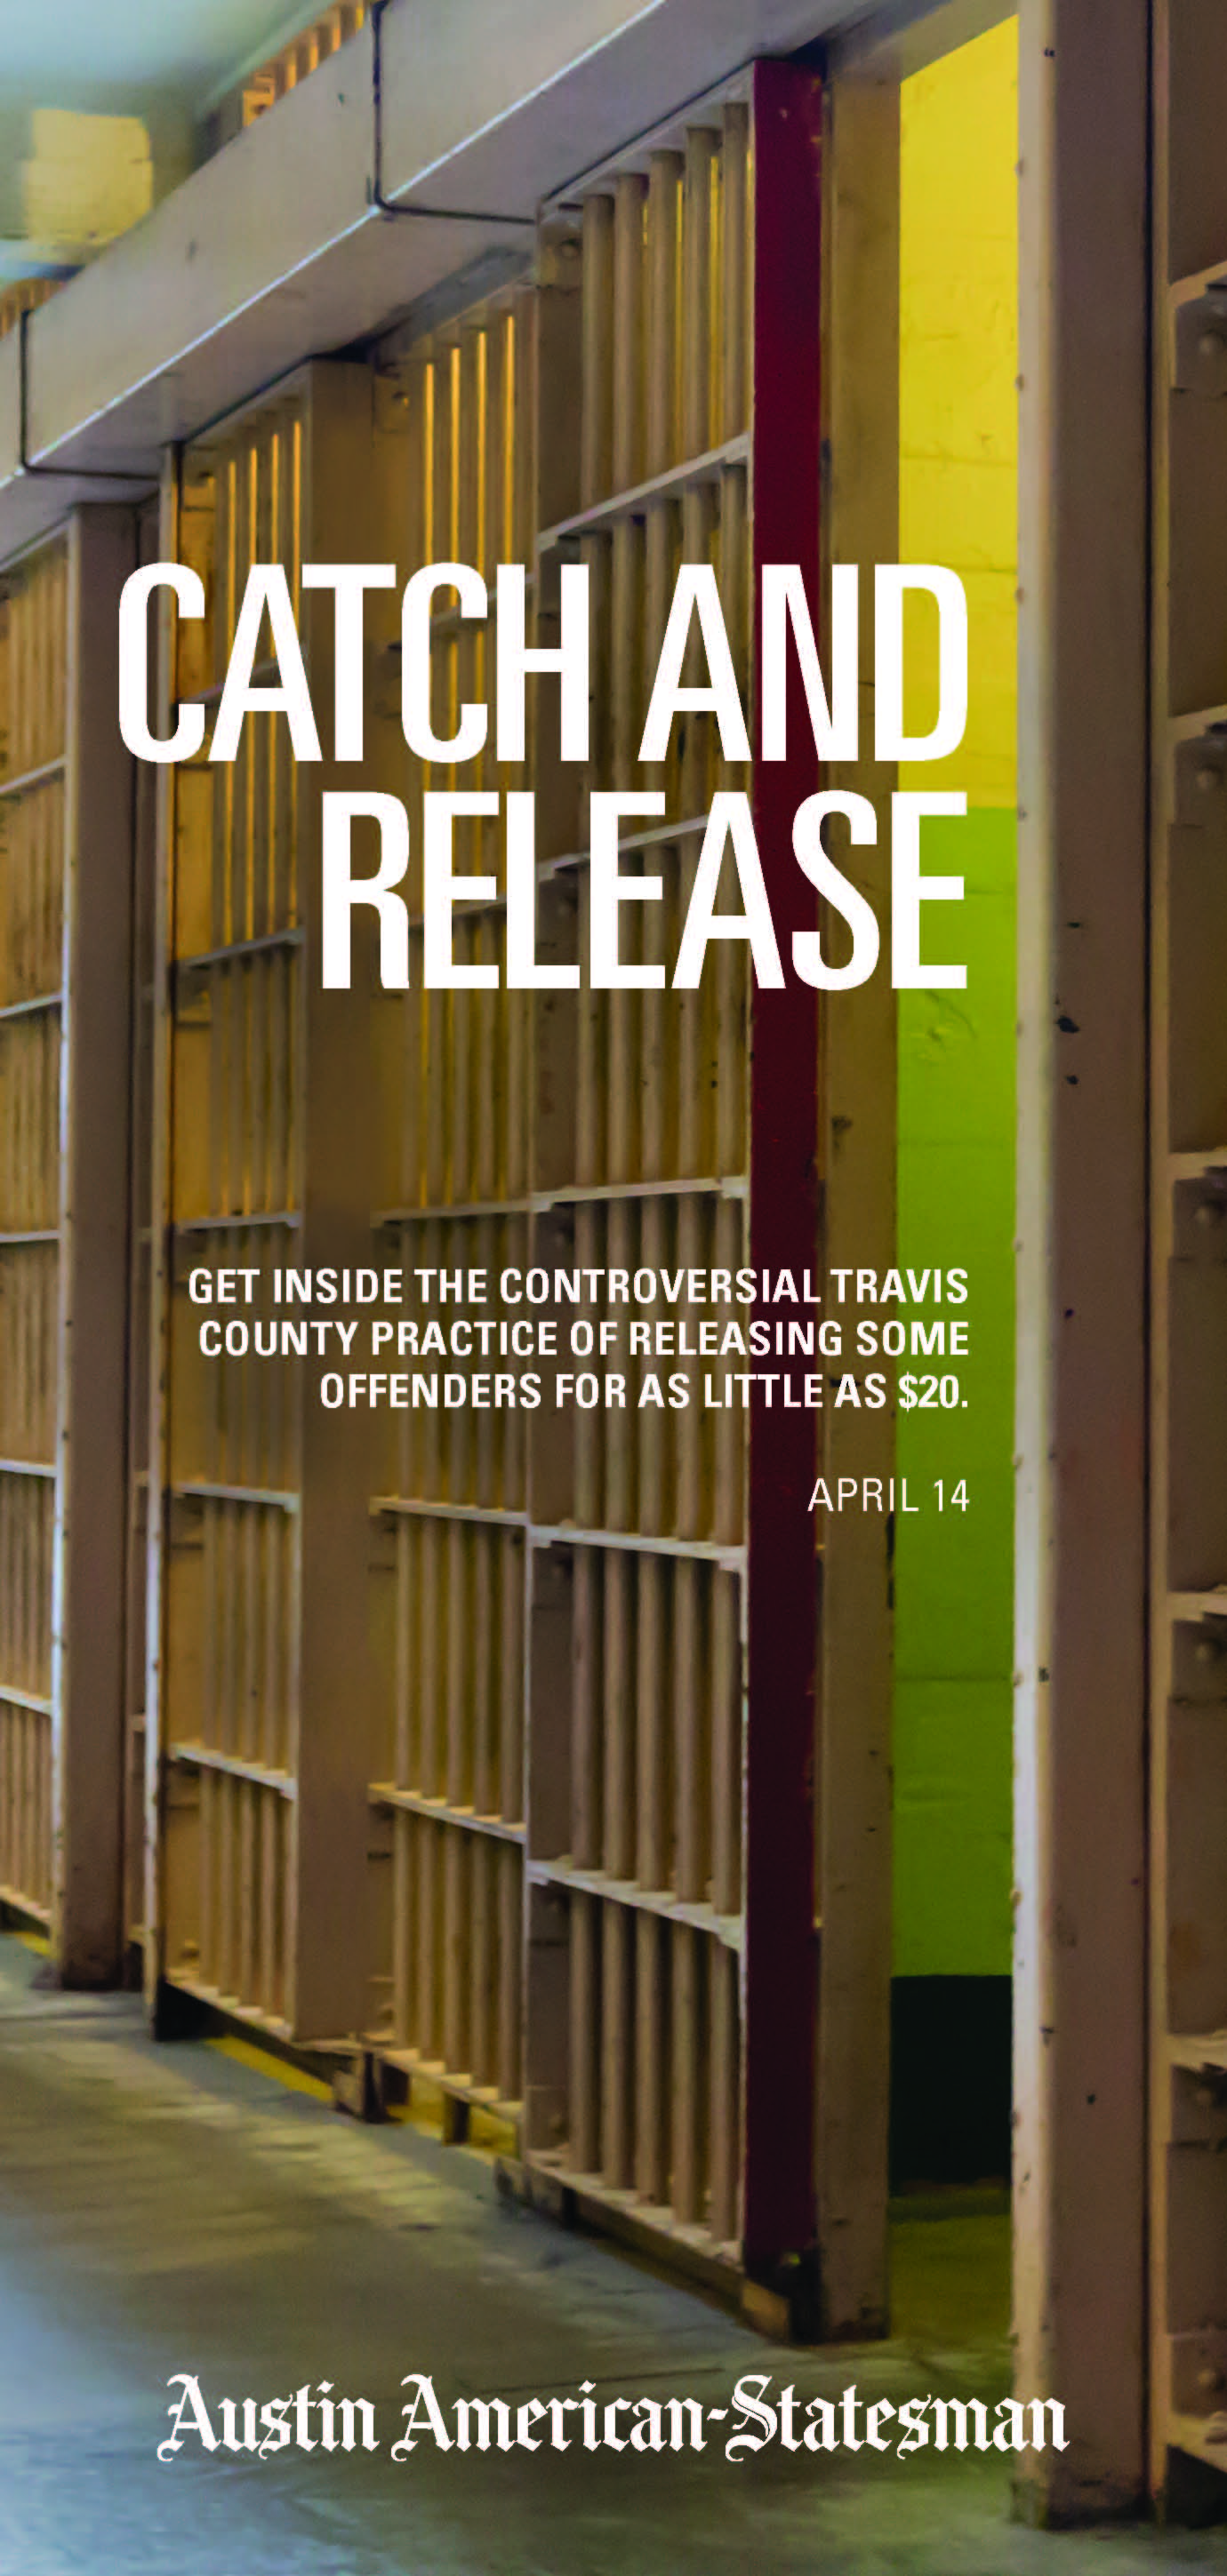 catch-and-release-1.jpg